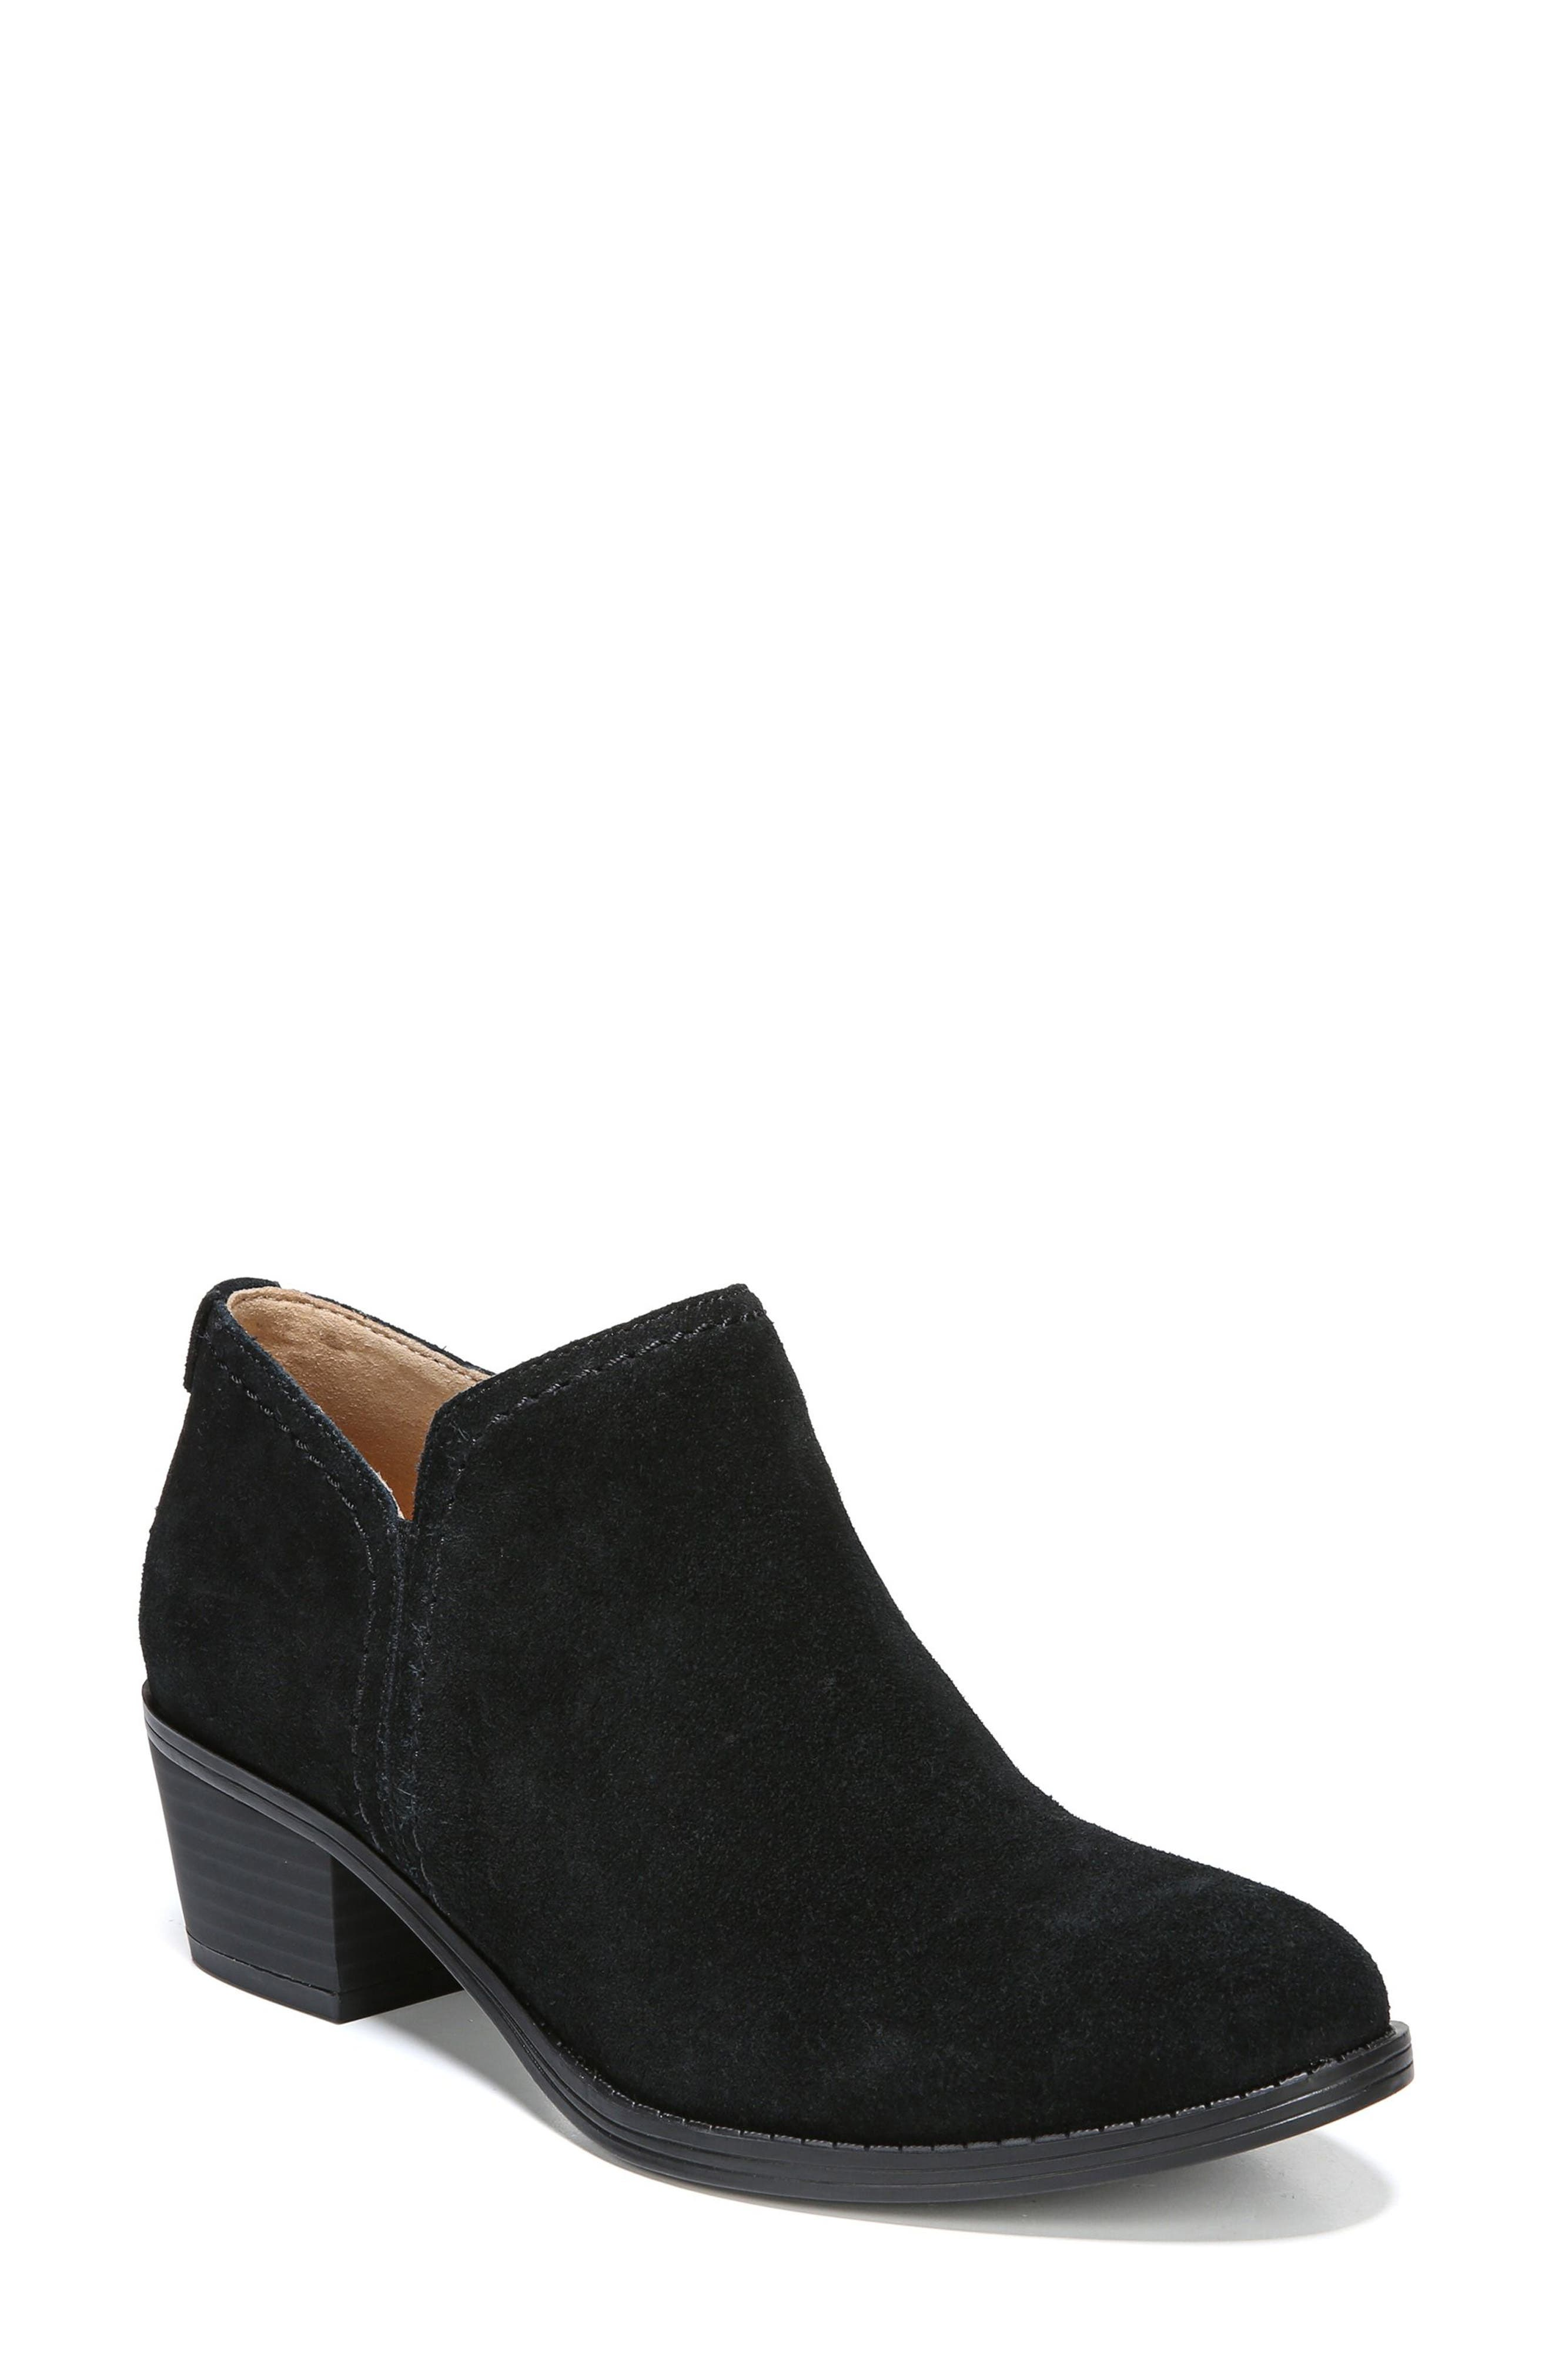 NATURALIZER 'Zarie' Block Heel Bootie, Main, color, 012